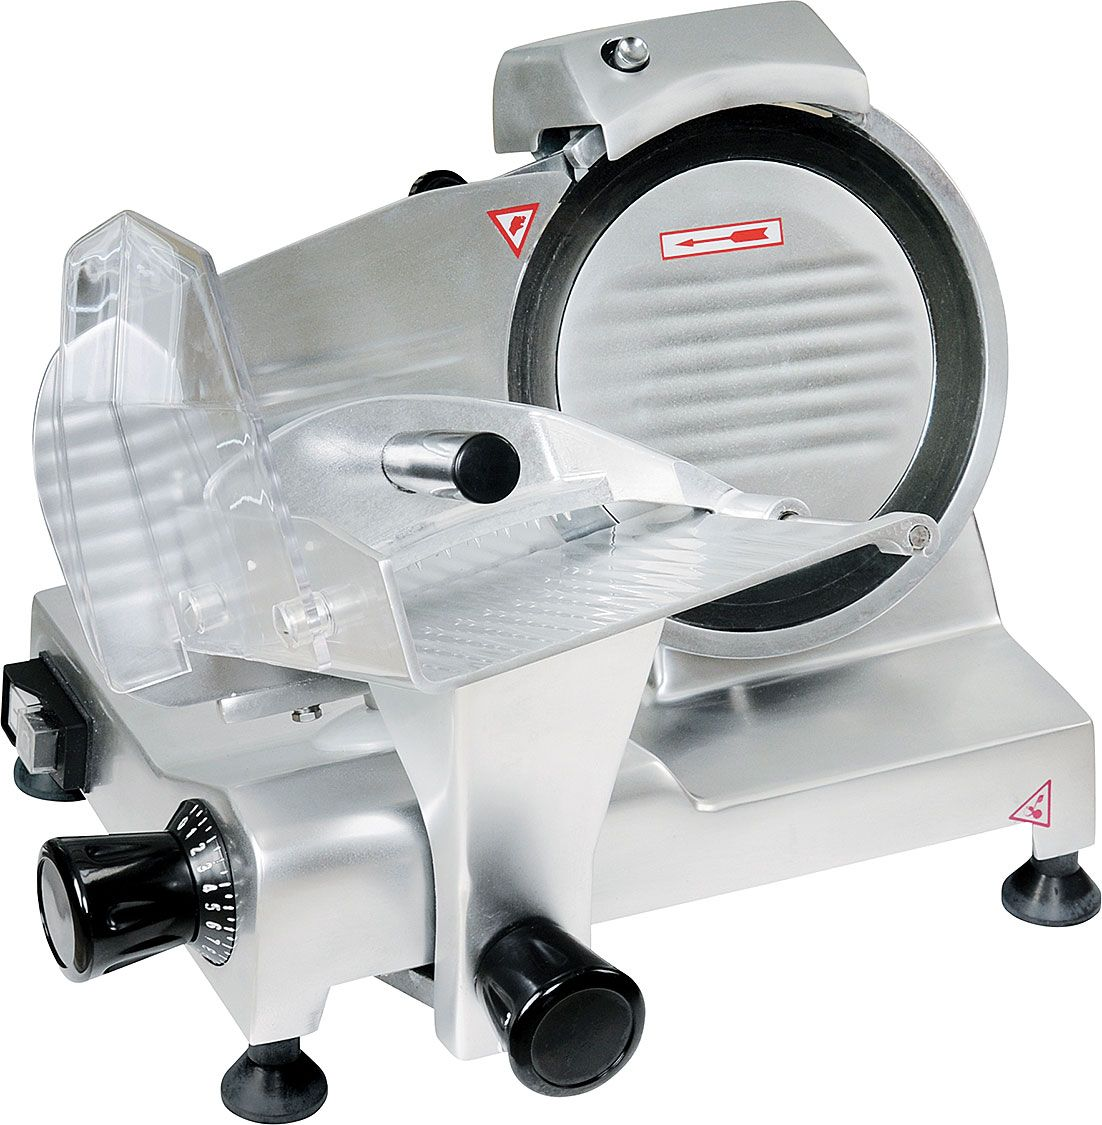 7-1/2 in. Heavy Duty Electric Meat Slicer | Princess Auto ...